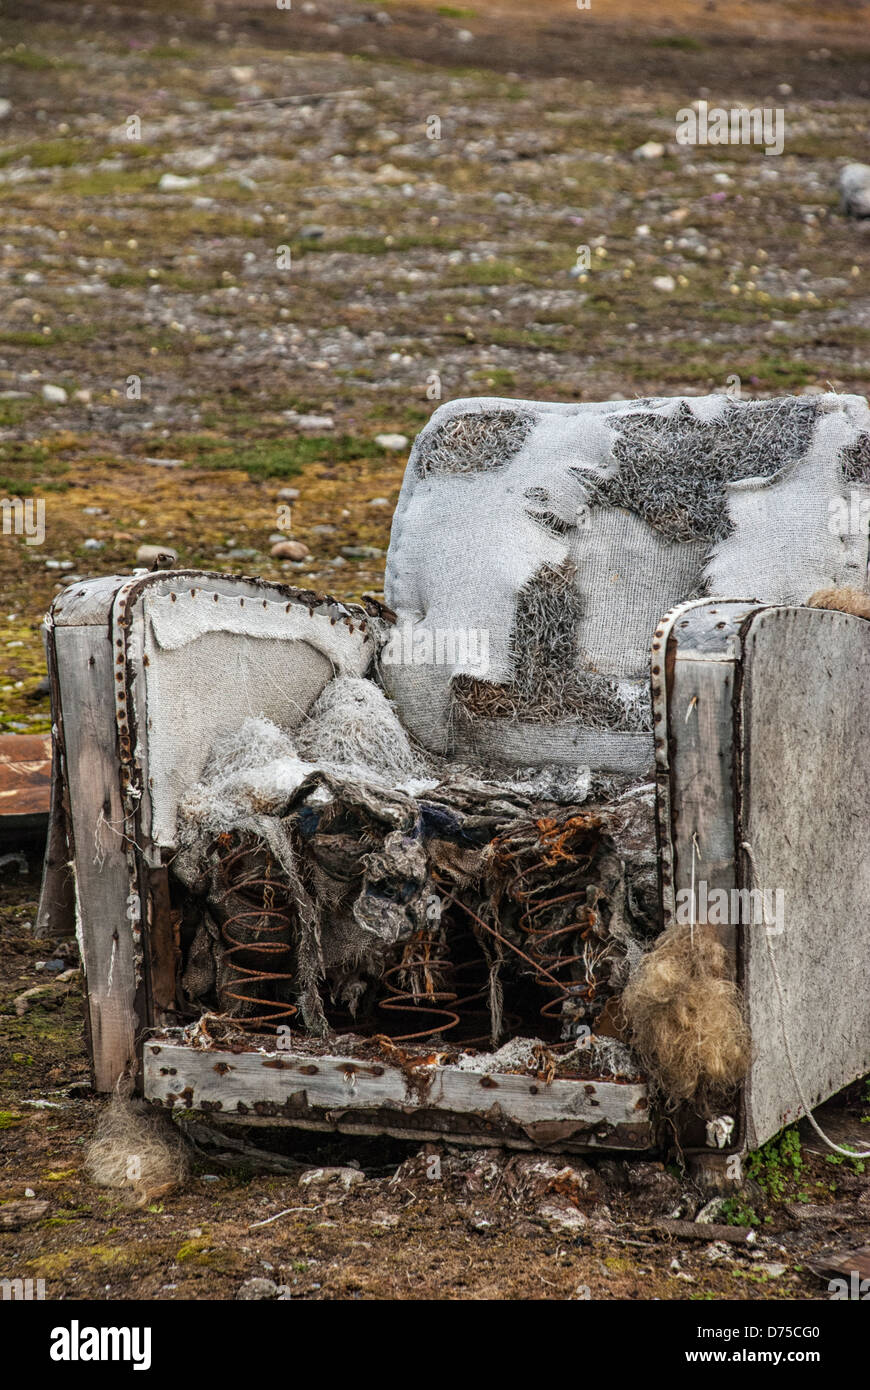 Old, ruined armchair at Camp Mansfield, the abandoned marble quarry, Blomstrandhalvoya, Svalbard Archipelago, Norway - Stock Image